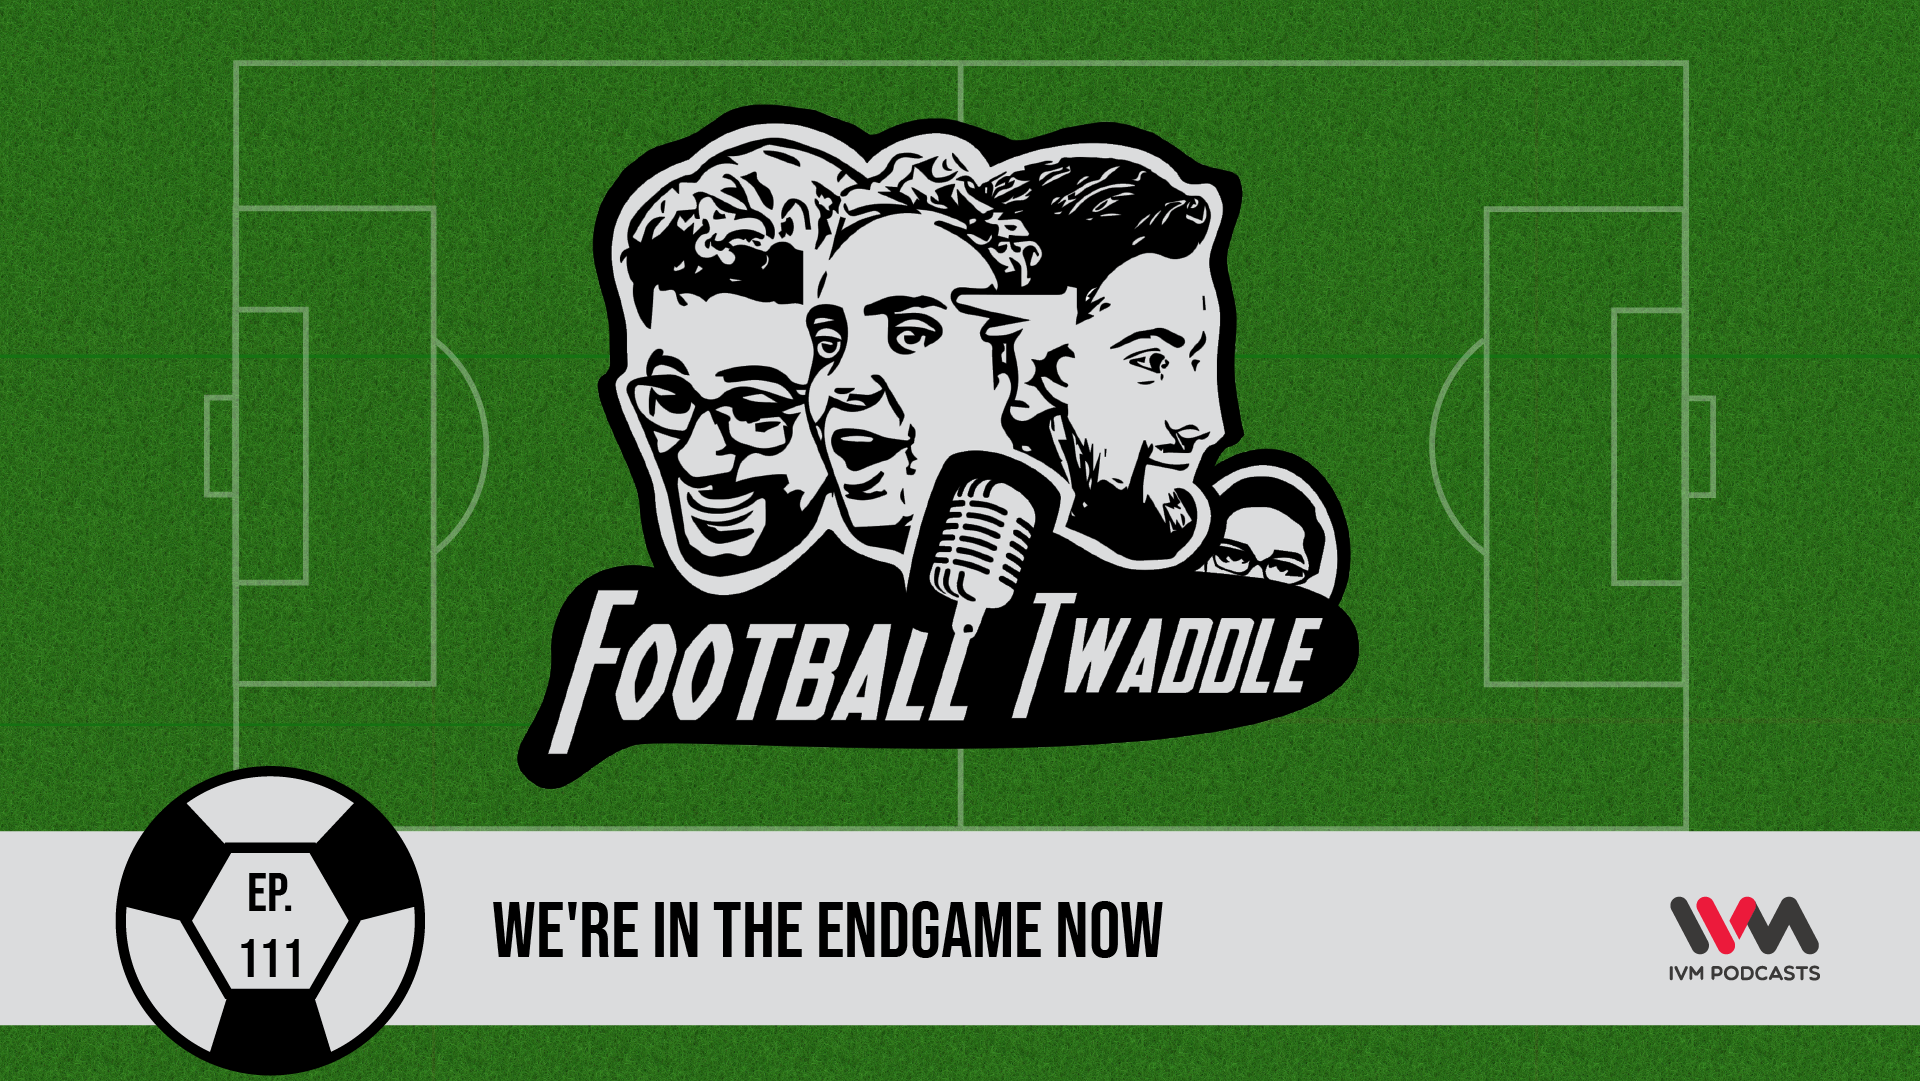 FootballTwaddleEpisode111.png